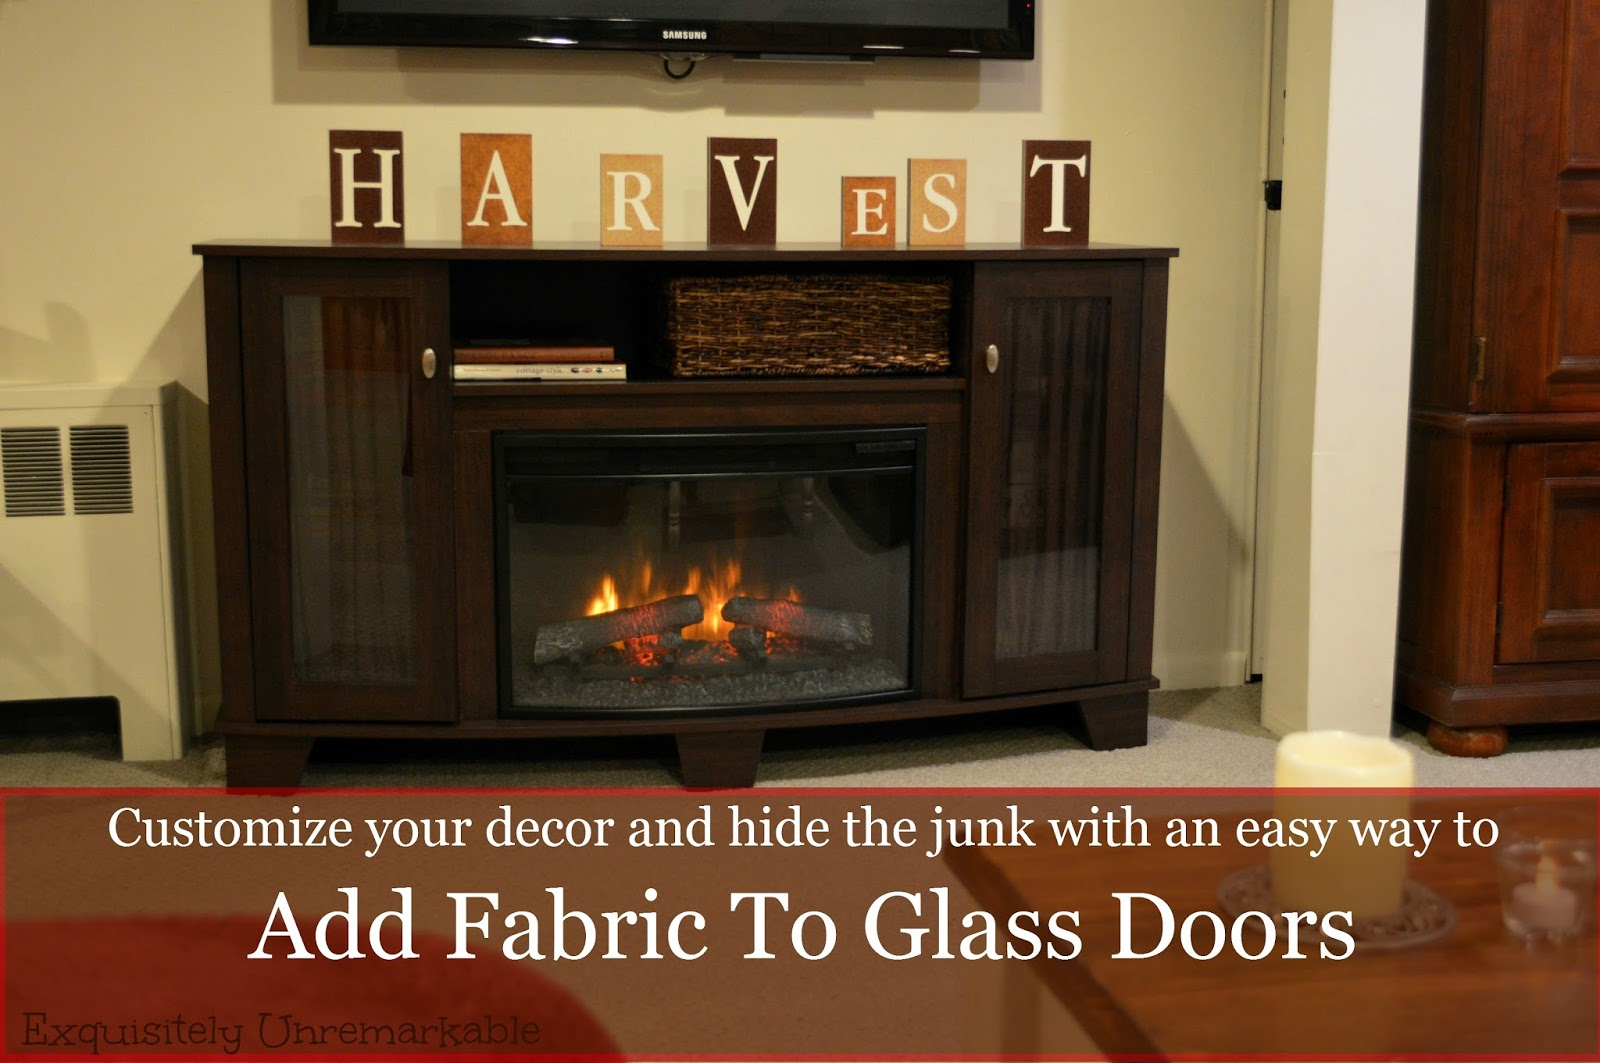 Add Fabric To Glass Doors